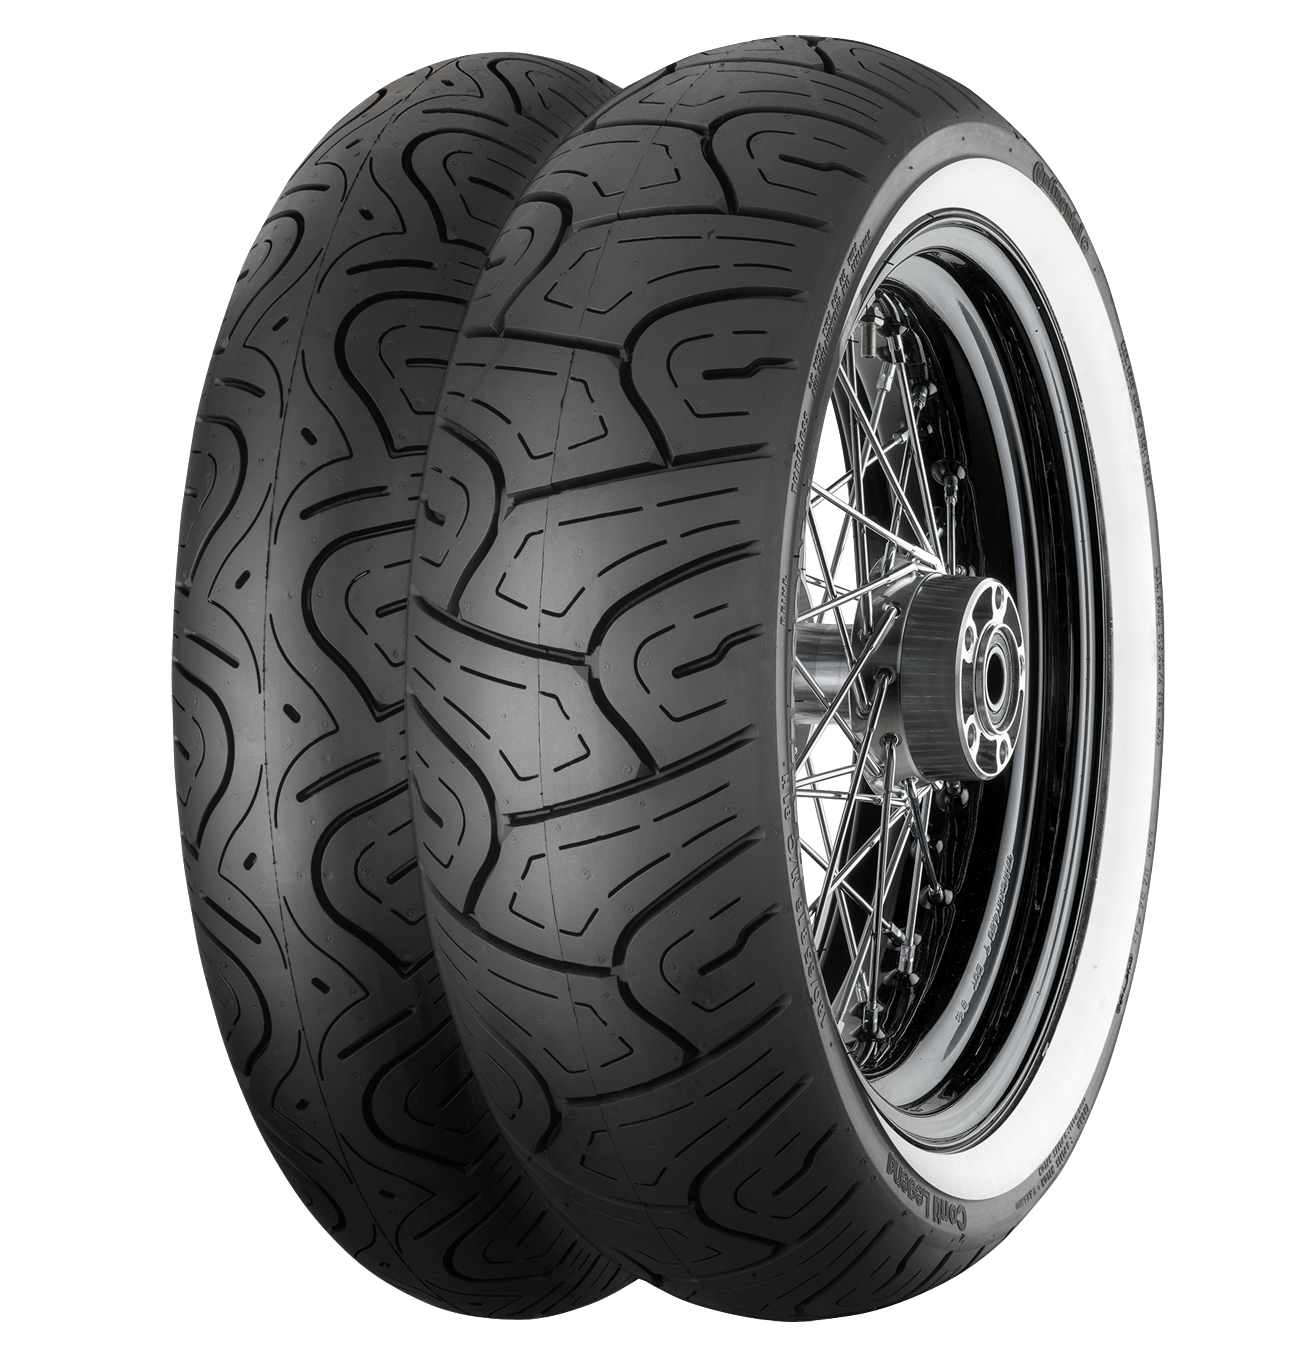 Continental Contilegend White Wall 150 80 B16 77h Rear Motorcycle Tyre Ebay Motorcycle Tires Tire Touring Bike